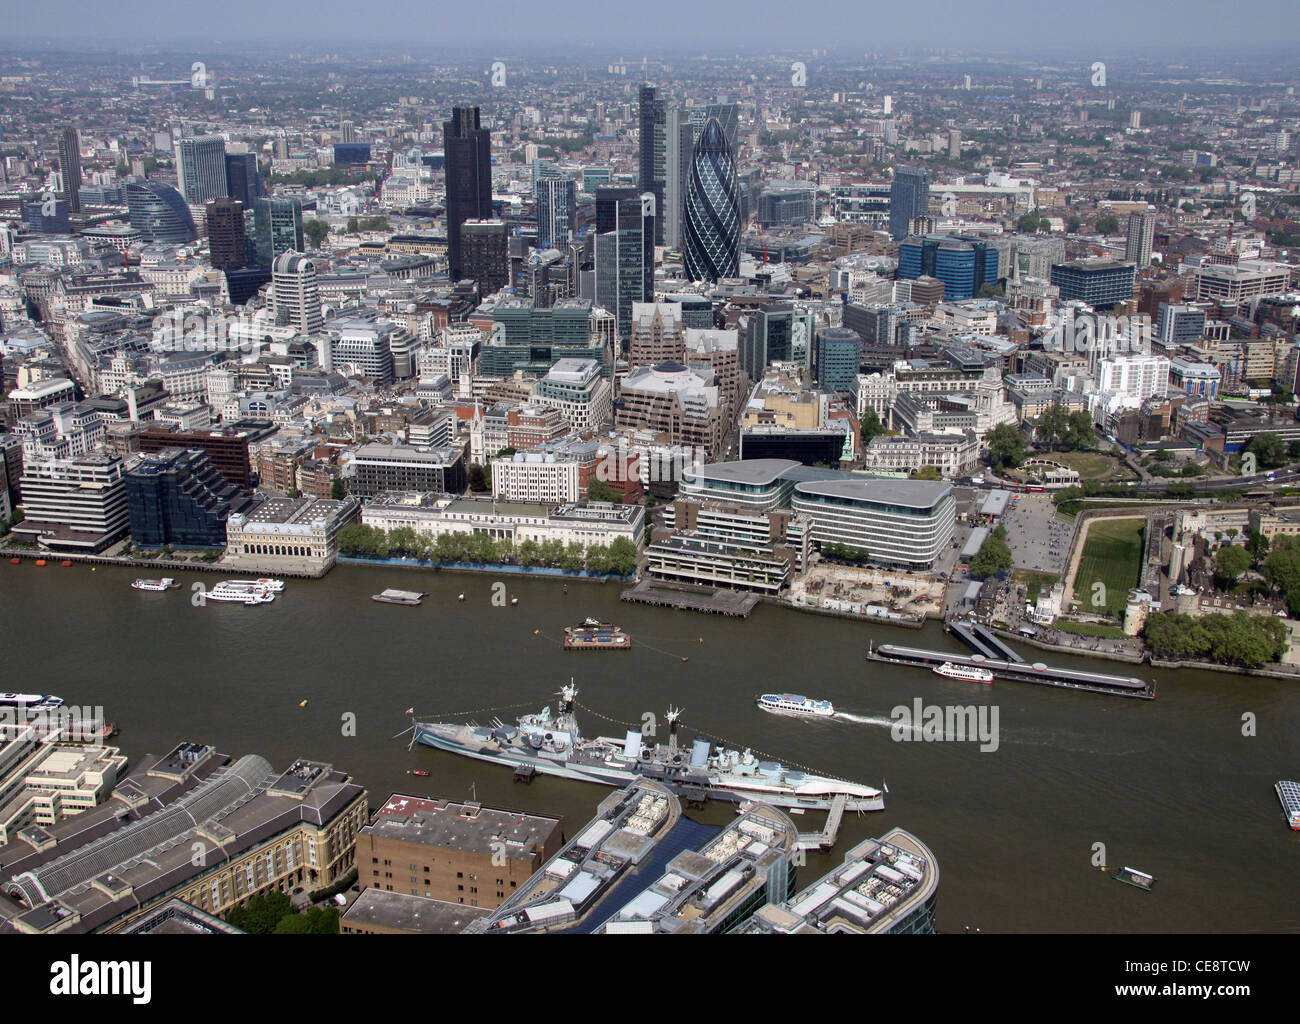 Aerial image of HMS Belfast and the City of London - Stock Image